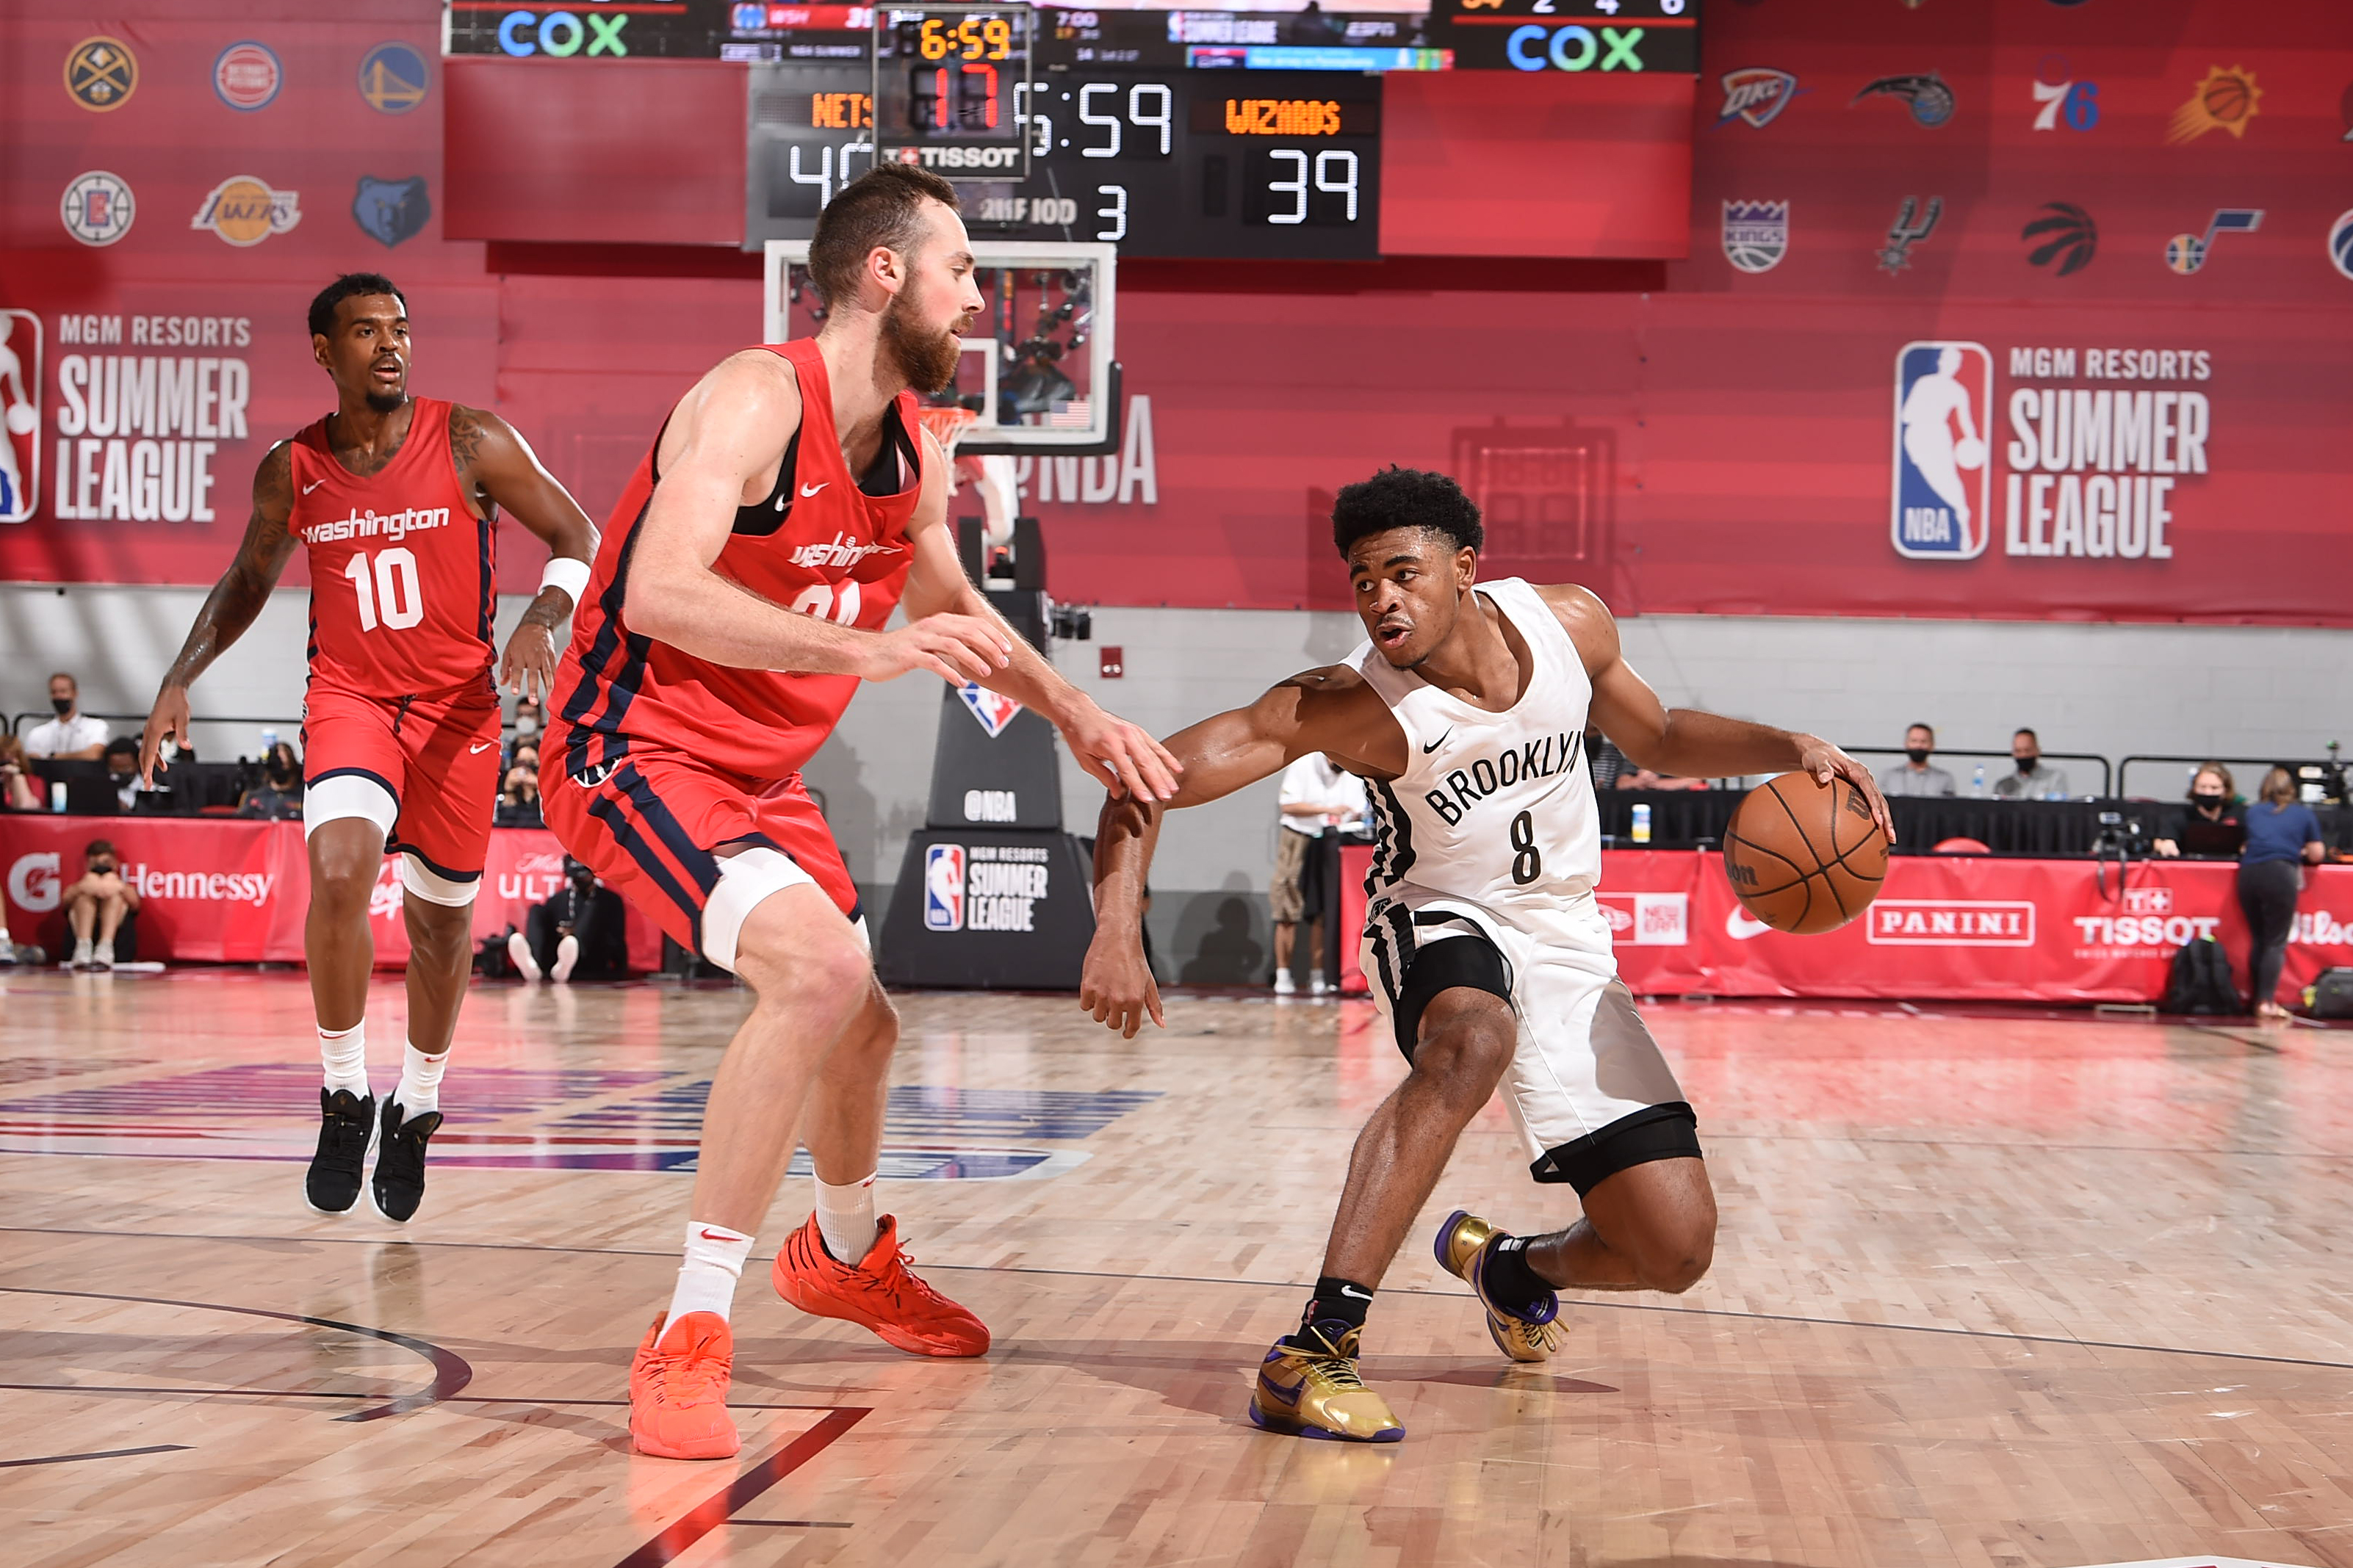 Cam Thomas #8 of the Brooklyn Nets drives to the basket against the Washington Wizards during the 2021 Las Vegas Summer League on August 12, 2021 at the Cox Pavilion in Las Vegas, Nevada.